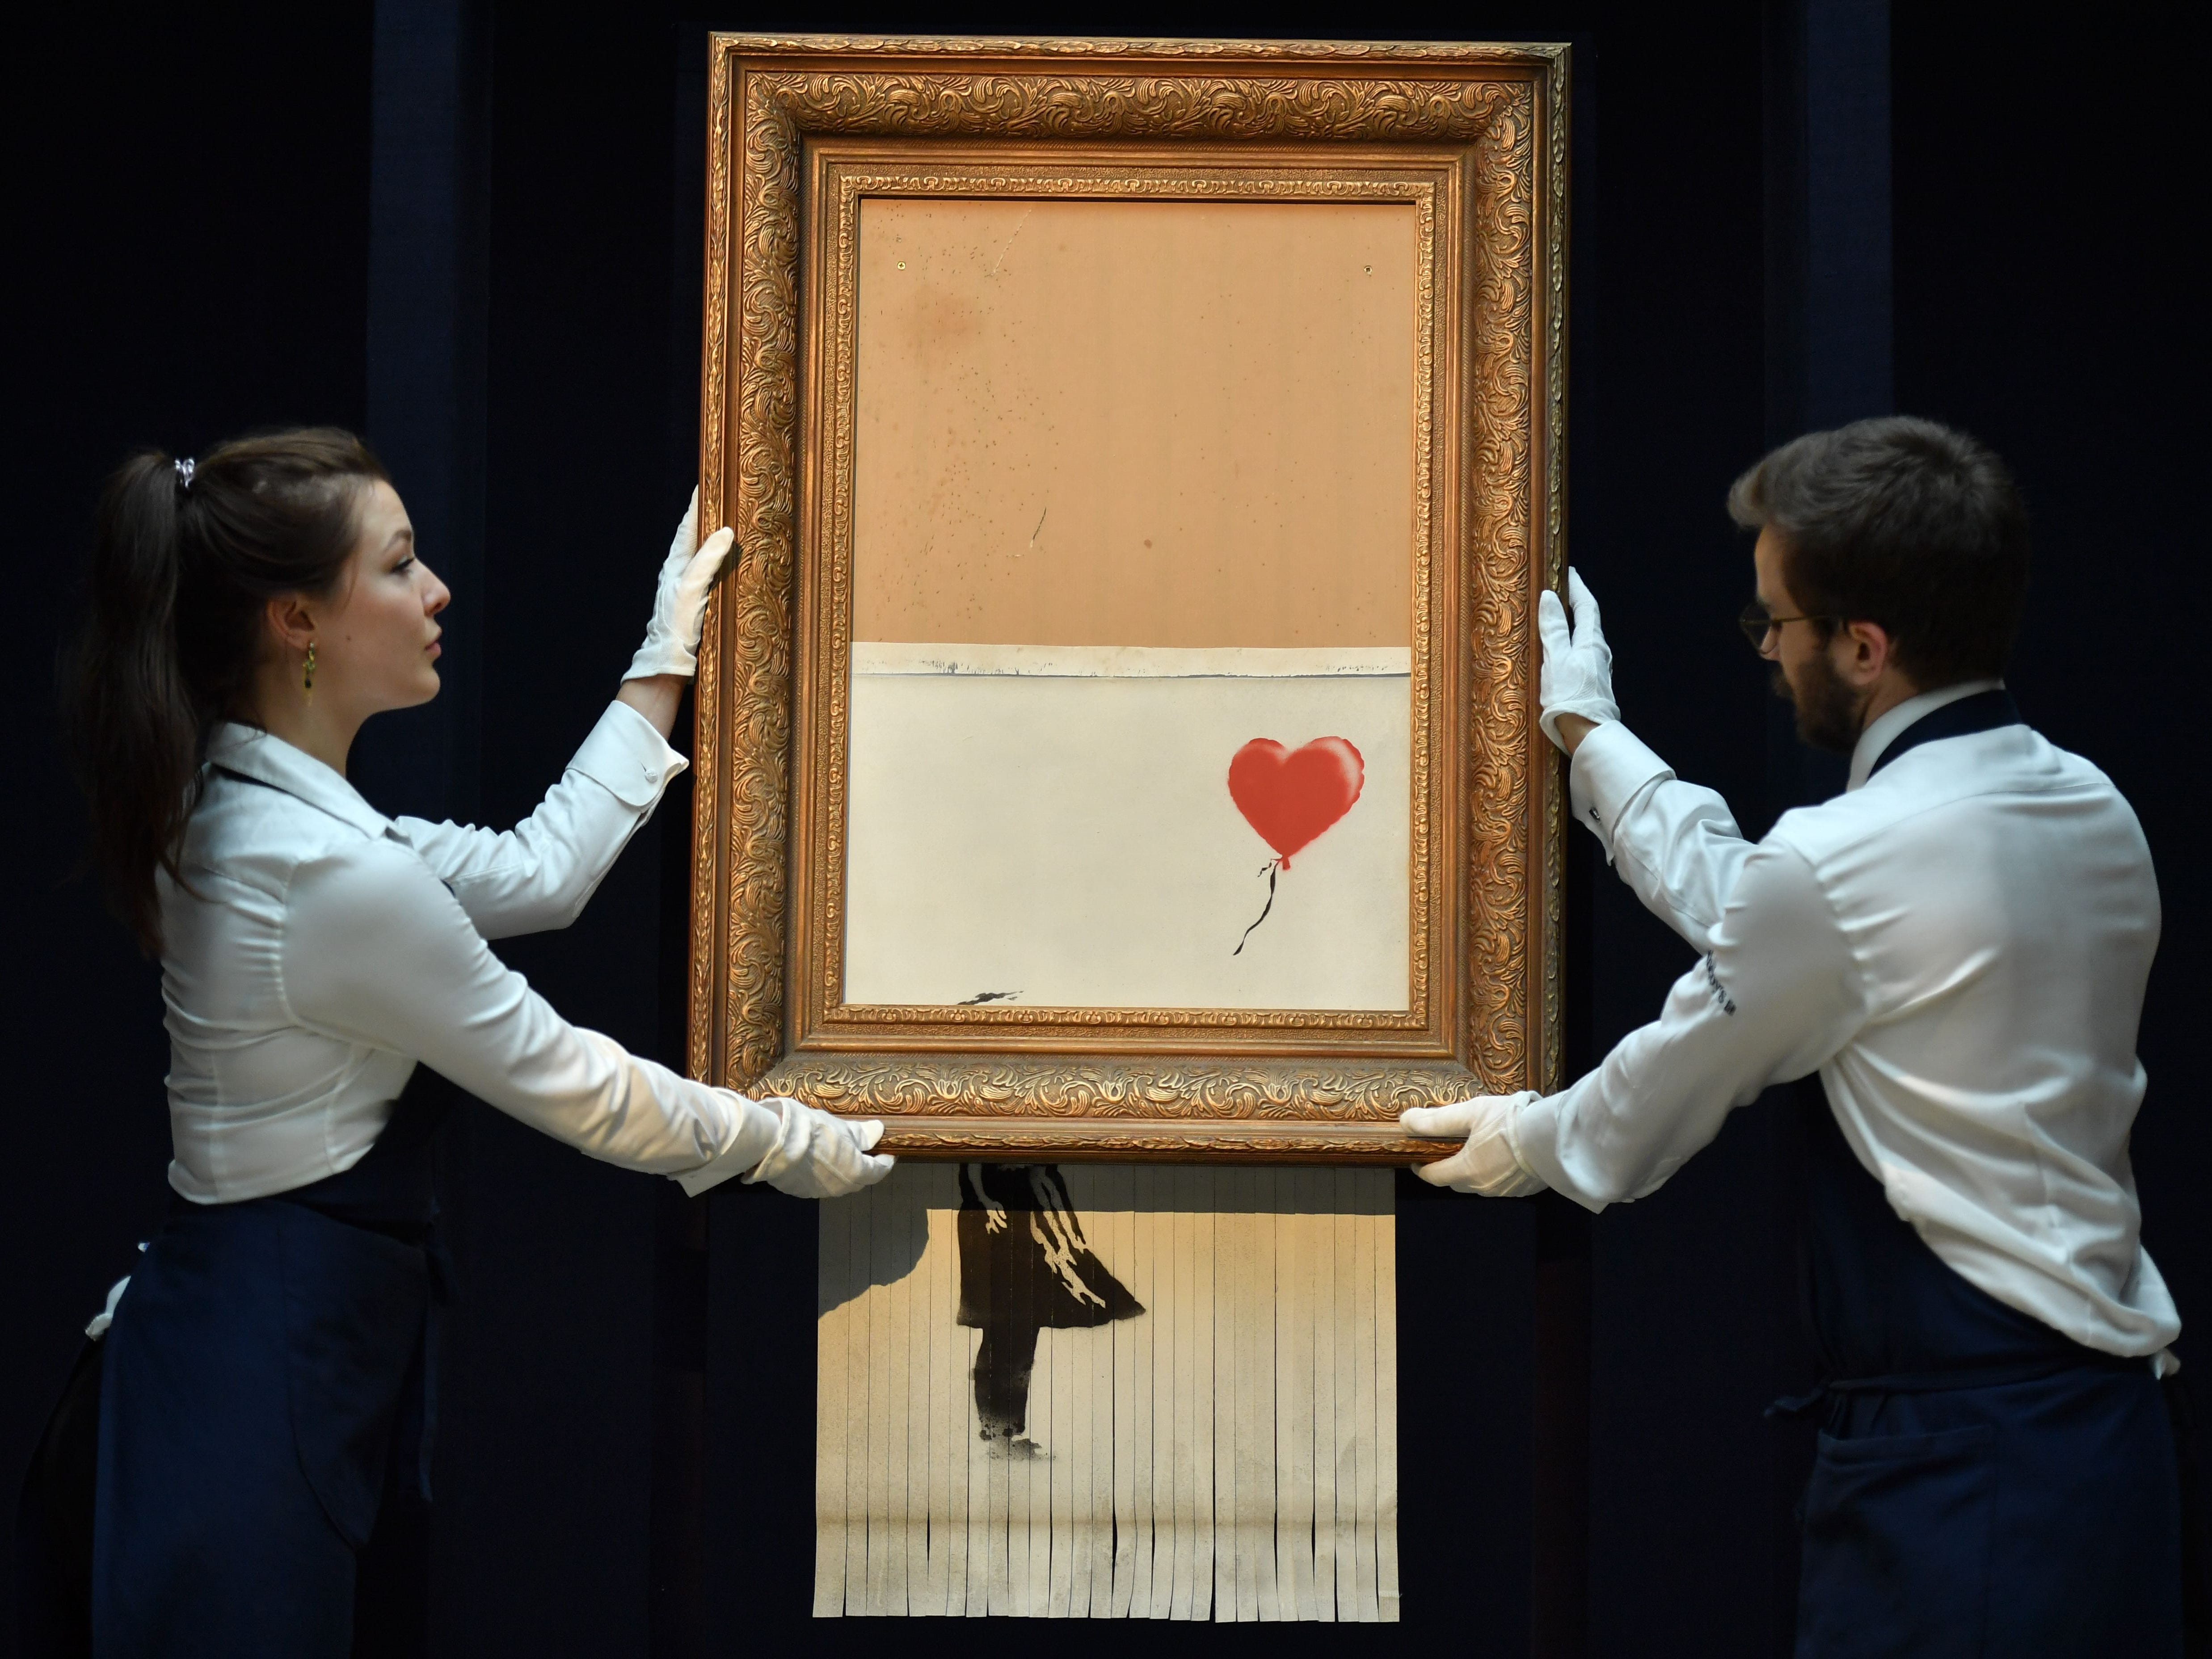 "Sotheby's employees pose with the newly completed work by artist Banksy entitled ""Love is in the Bin"", a work that was created when the painting ""Girl with Balloon"" was passed through a shredder in a surprise intervention by the artist, at Sotheby's auction house in London on Oct. 12, 2018, following the work's sale. - The buyer of a work by street artist Banksy that was partially destroyed moments after it sold has gone through with the purchase, Sotheby's auction house said on October 11, 2018. The painting ""Girl with Balloon"" was passed through a shredder hidden in the frame just after it went under the hammer last week for £1,042,000 ($1.4 million, 1.2 million euros). The modified version has now been certified by Banksy's authentication body Pest Control as a new piece of work in its own right, entitled ""Love is in the Bin""."